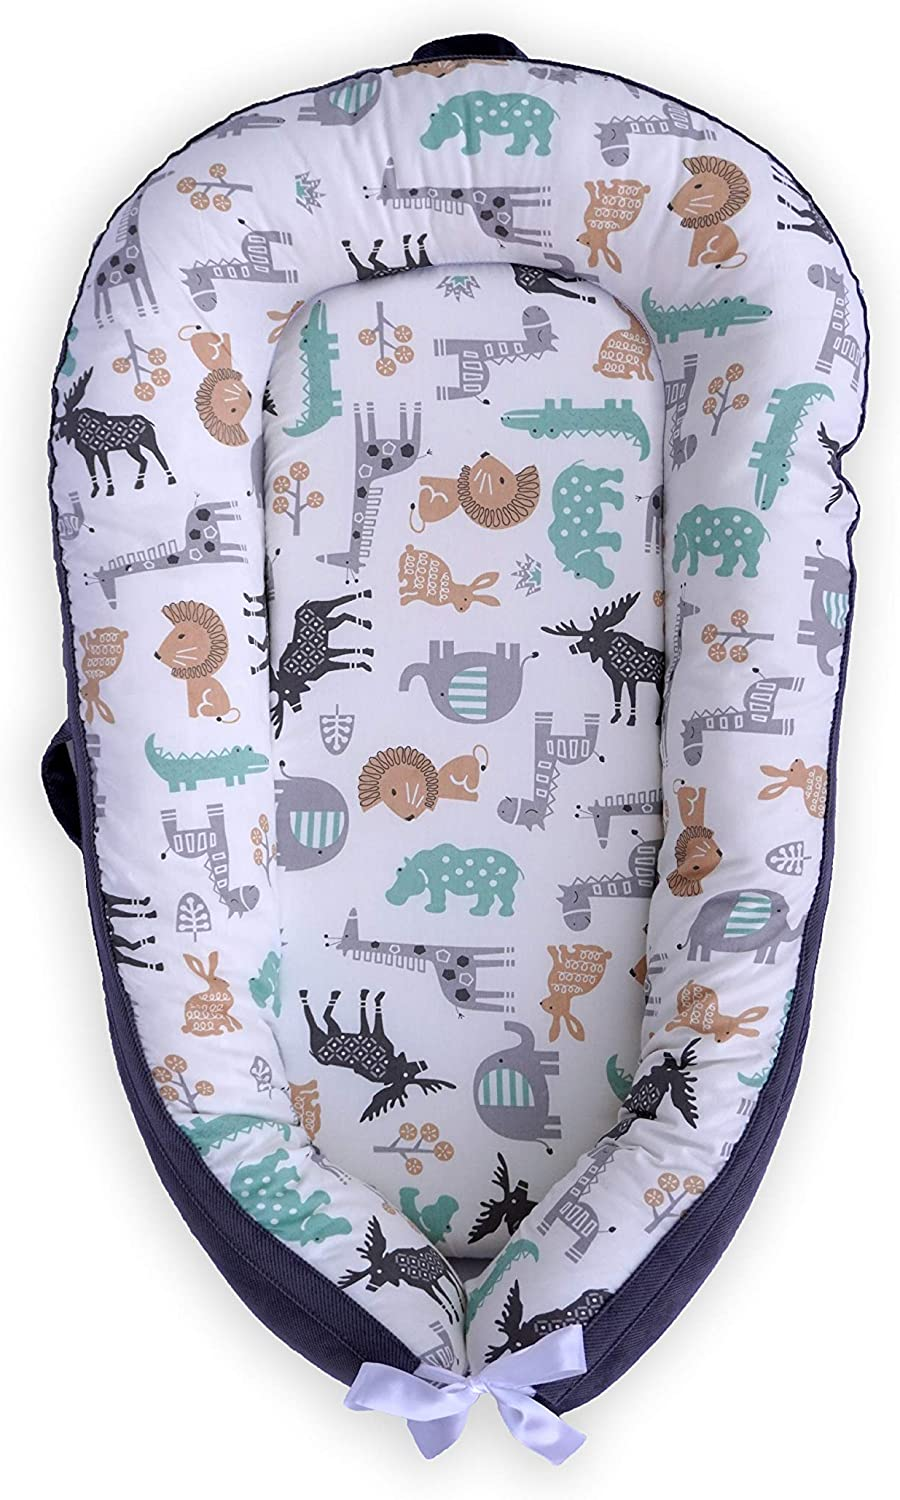 Moosey Baby - Baby Lounger Set, Breathable Cotton Baby Nest, Mach...